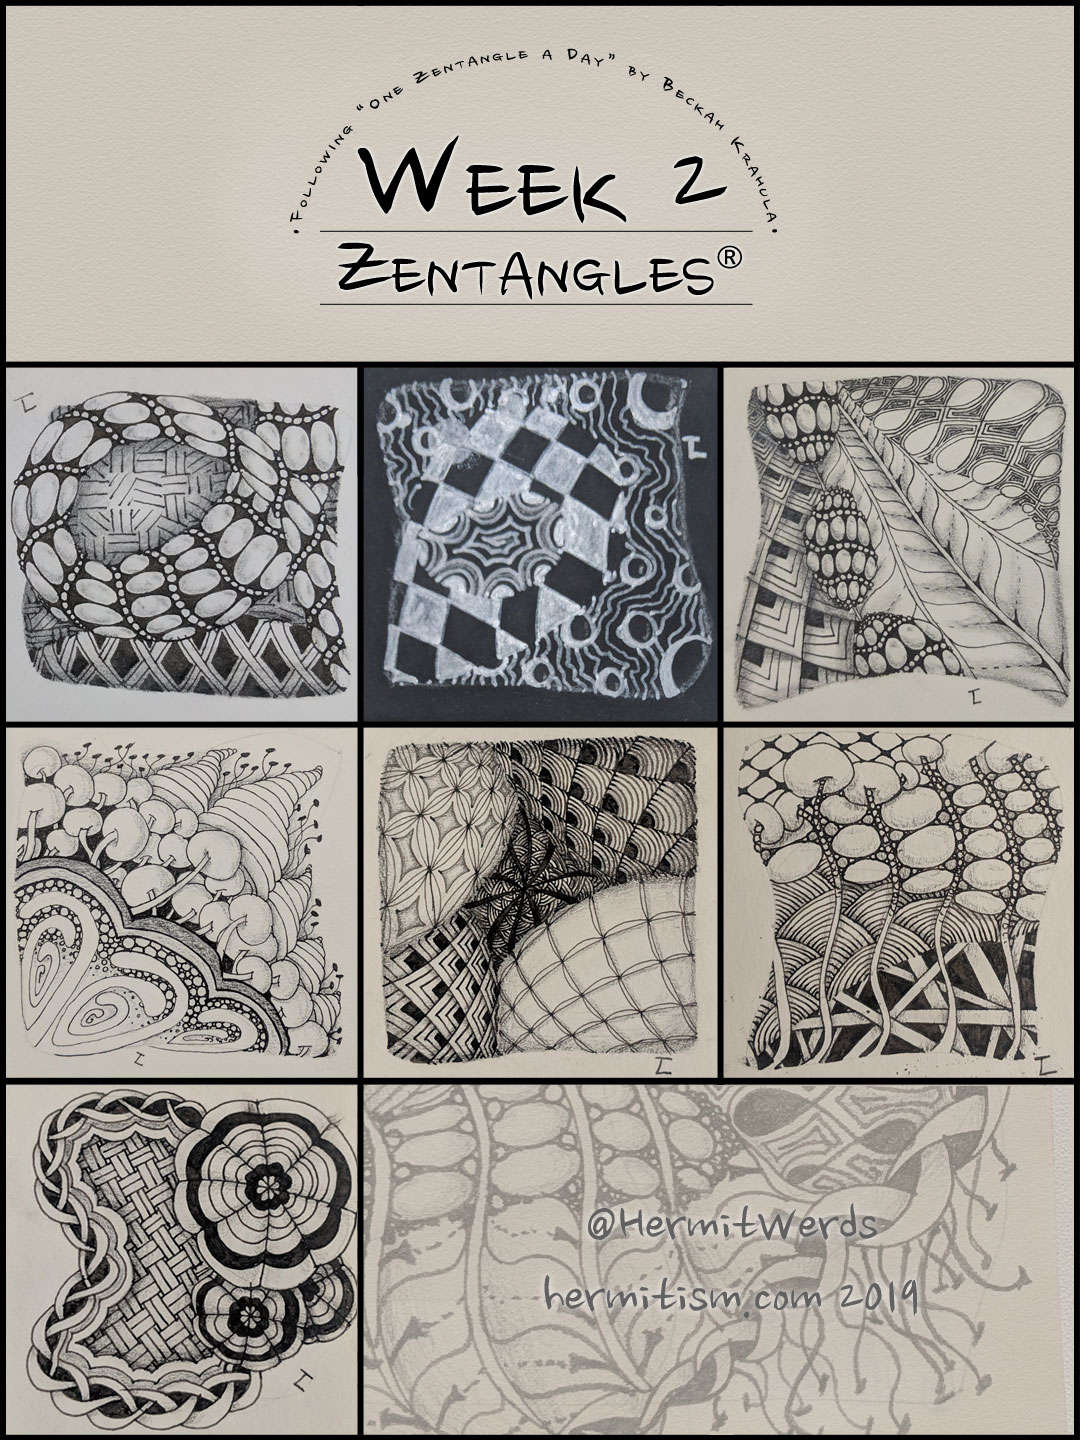 Week 2 Zentangles by Hermit Werds for Pinterest